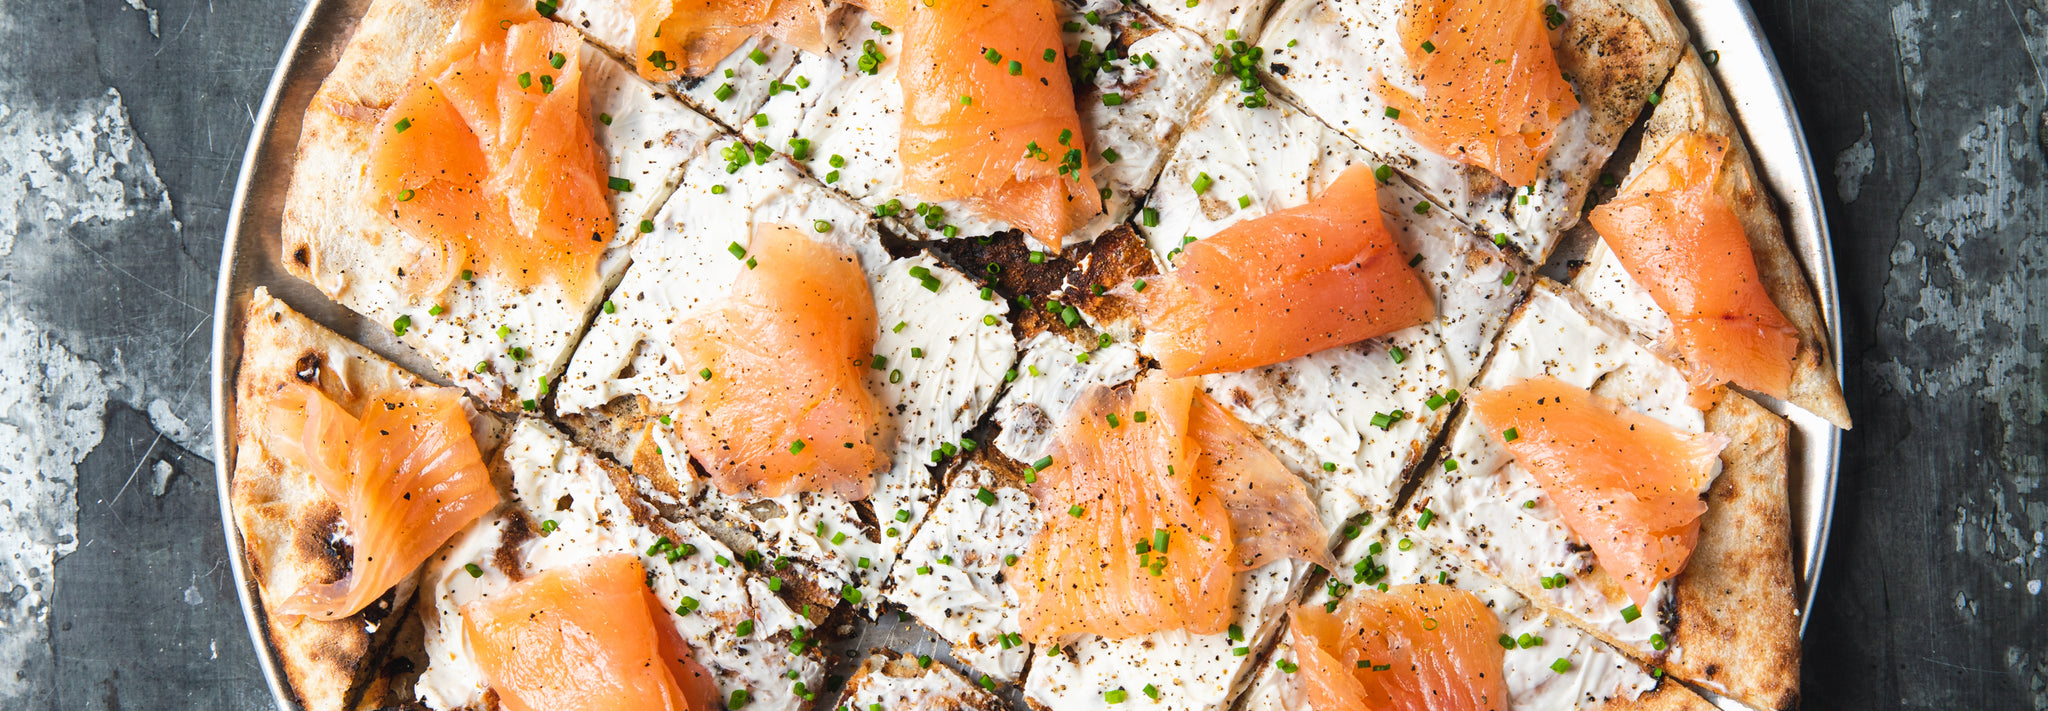 Smoked Salmon & Cream Cheese Thin & Crispy Pizza